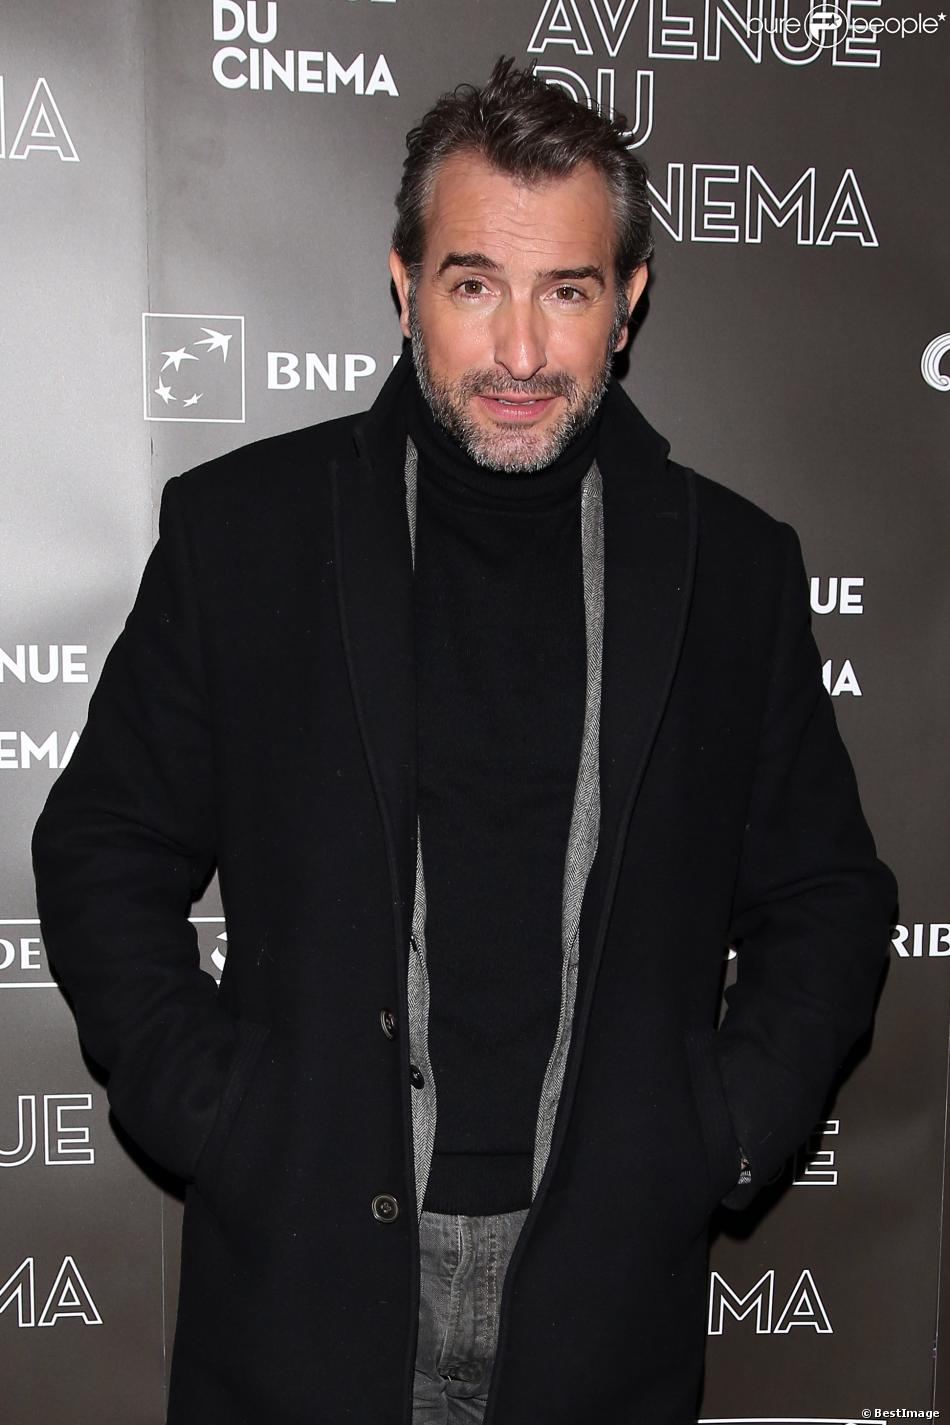 Jean dujardin paris le 12 f vrier 2013 for Dujardin johnny